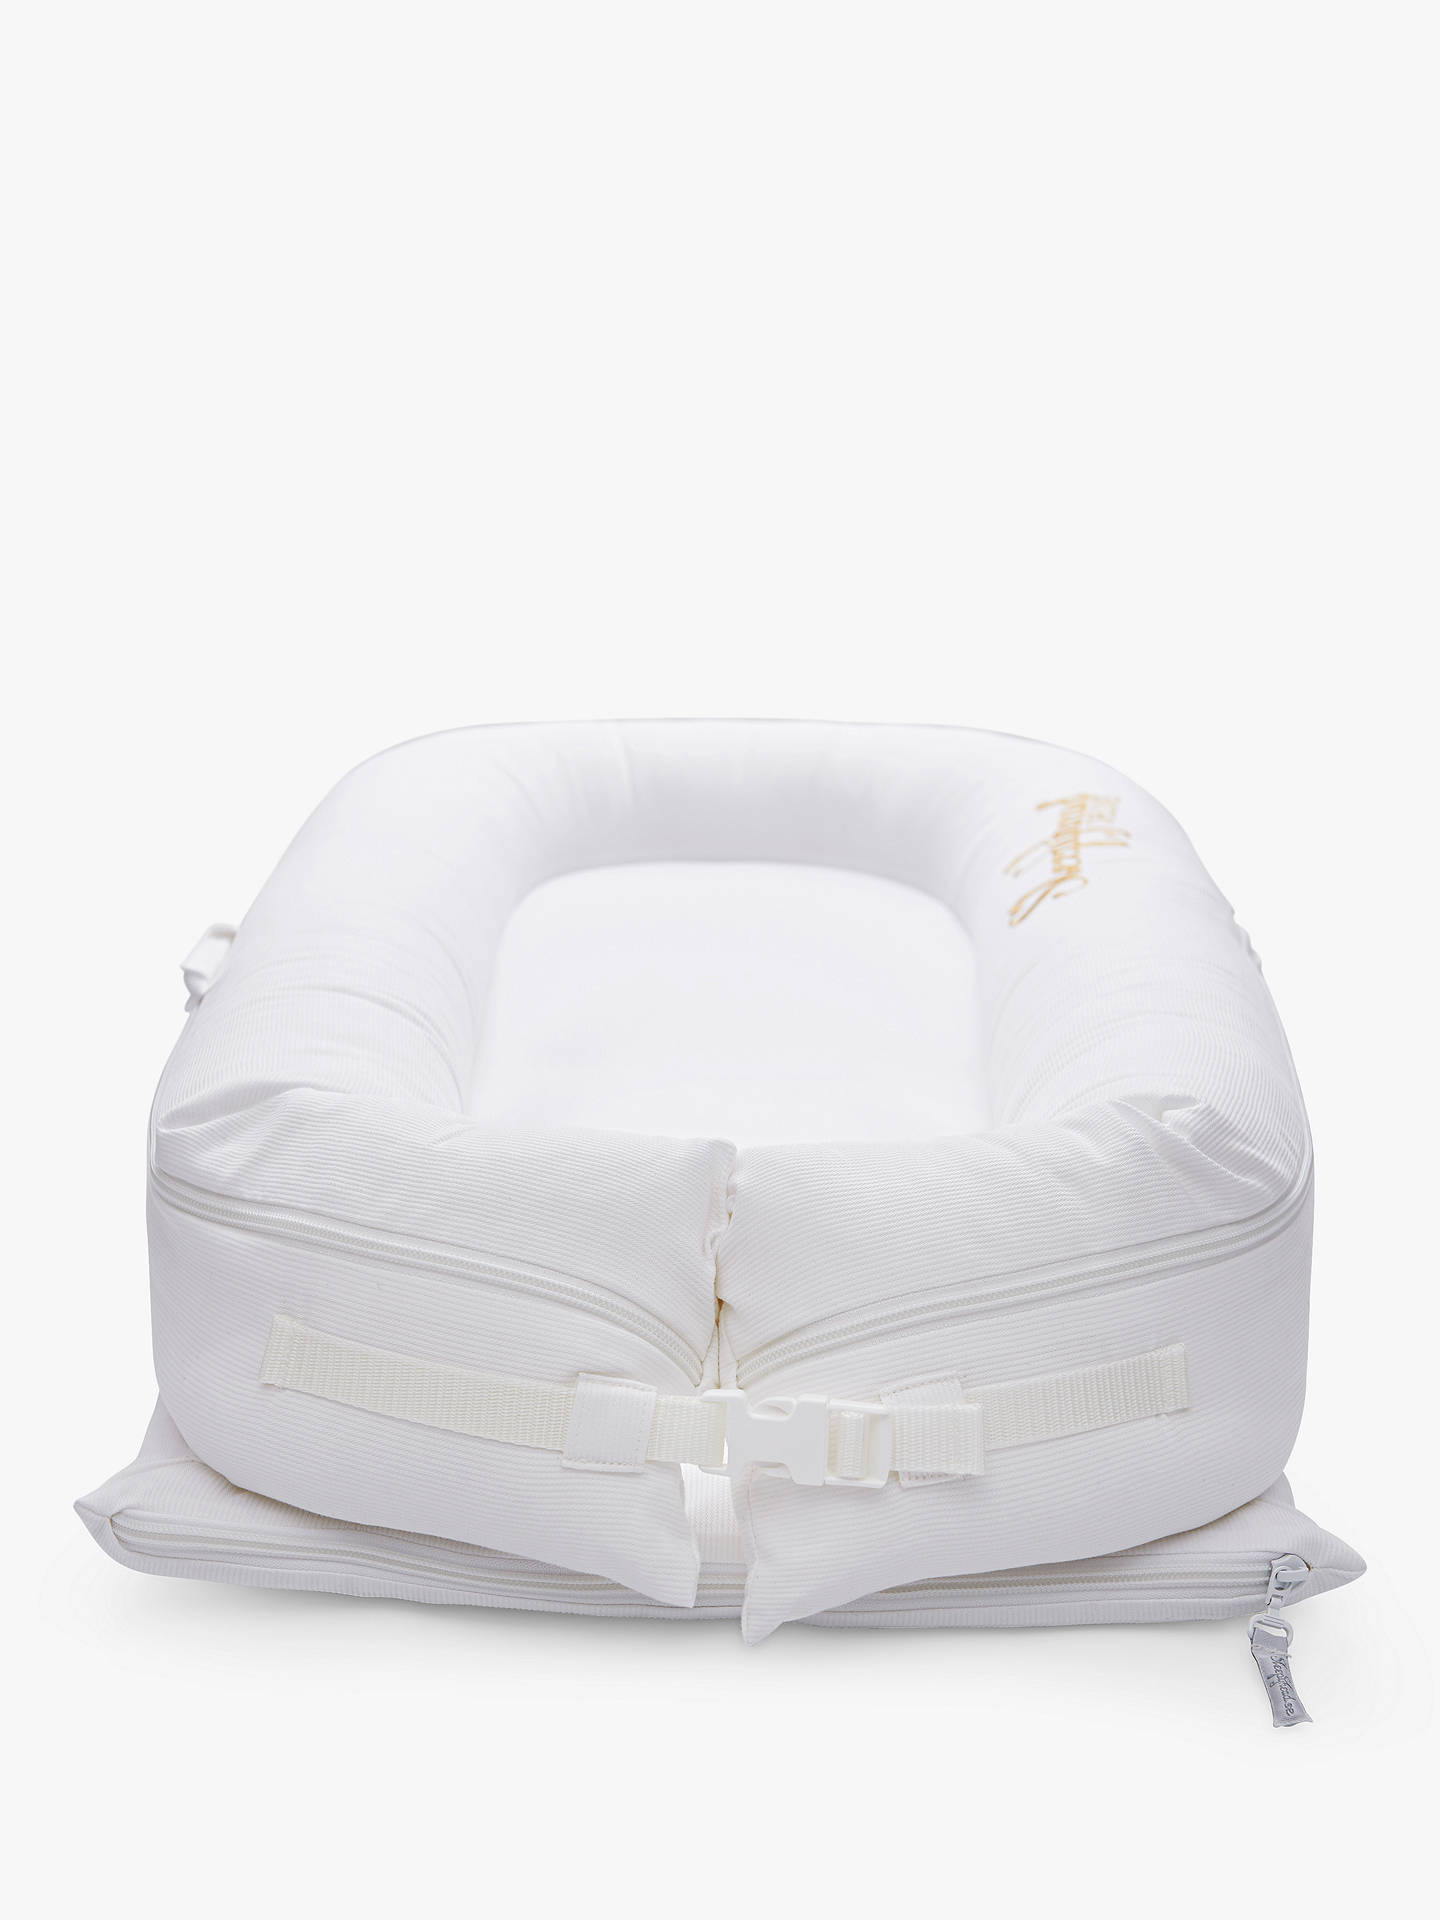 Buy Sleepyhead Deluxe+ Pristine White Baby Pod Cover, 0-8 months Online at johnlewis.com